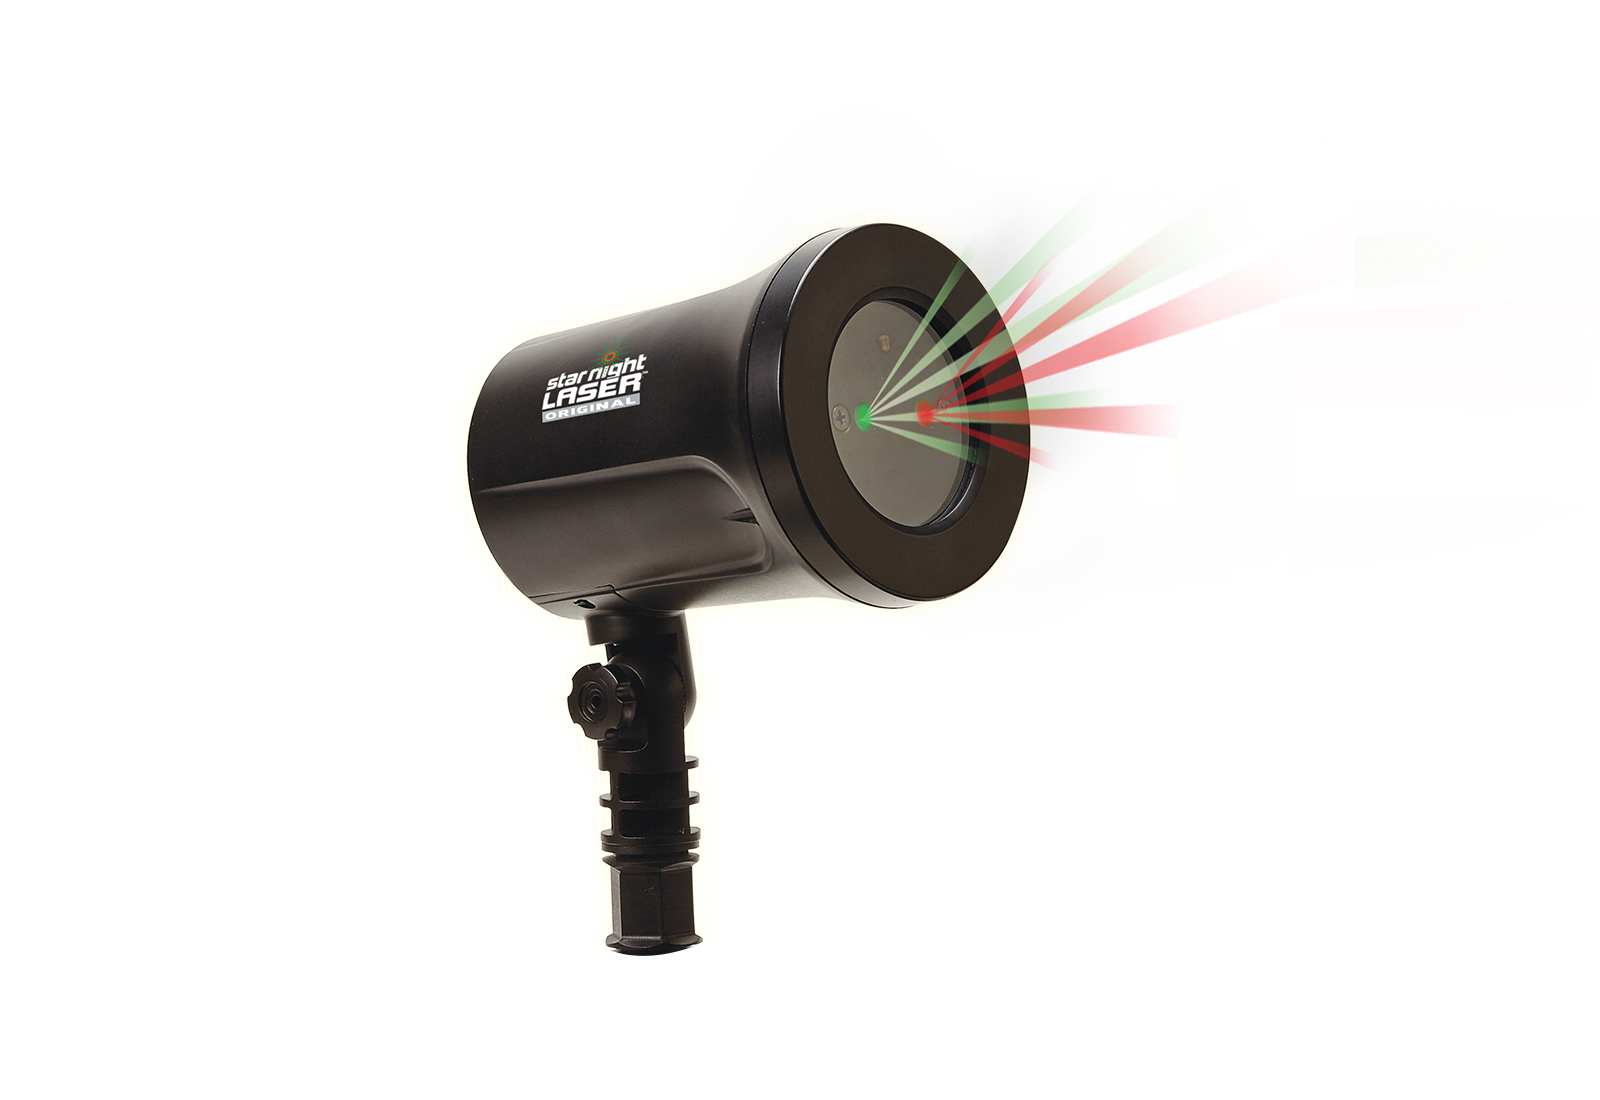 Star Night Lasers Product Image